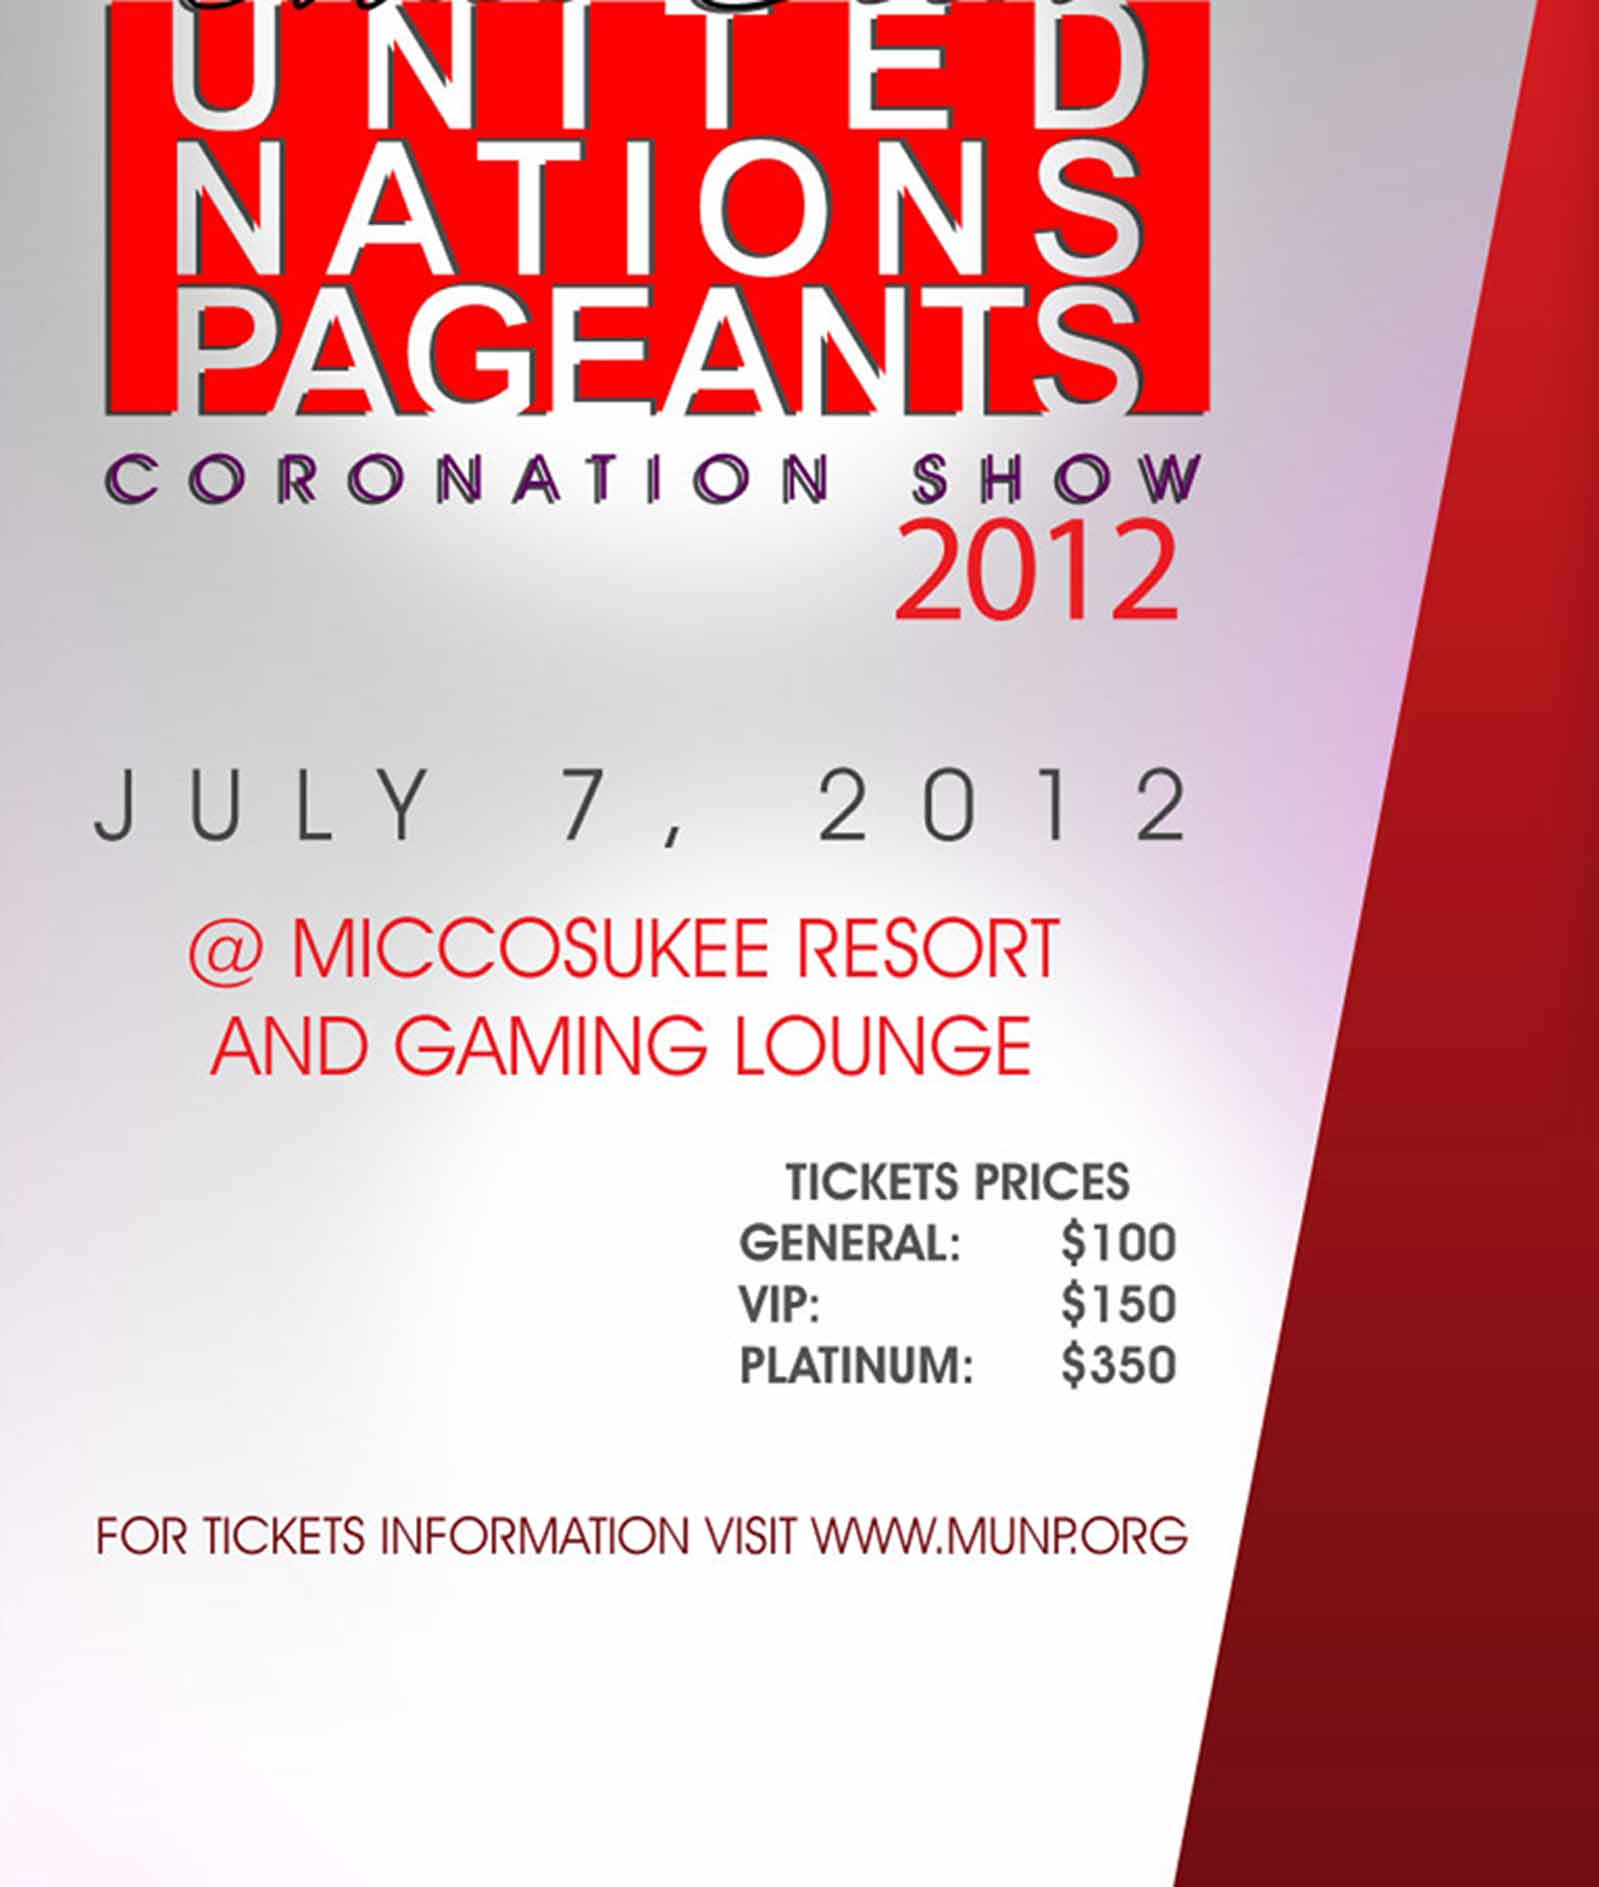 United Nations Pageant 2012 Information